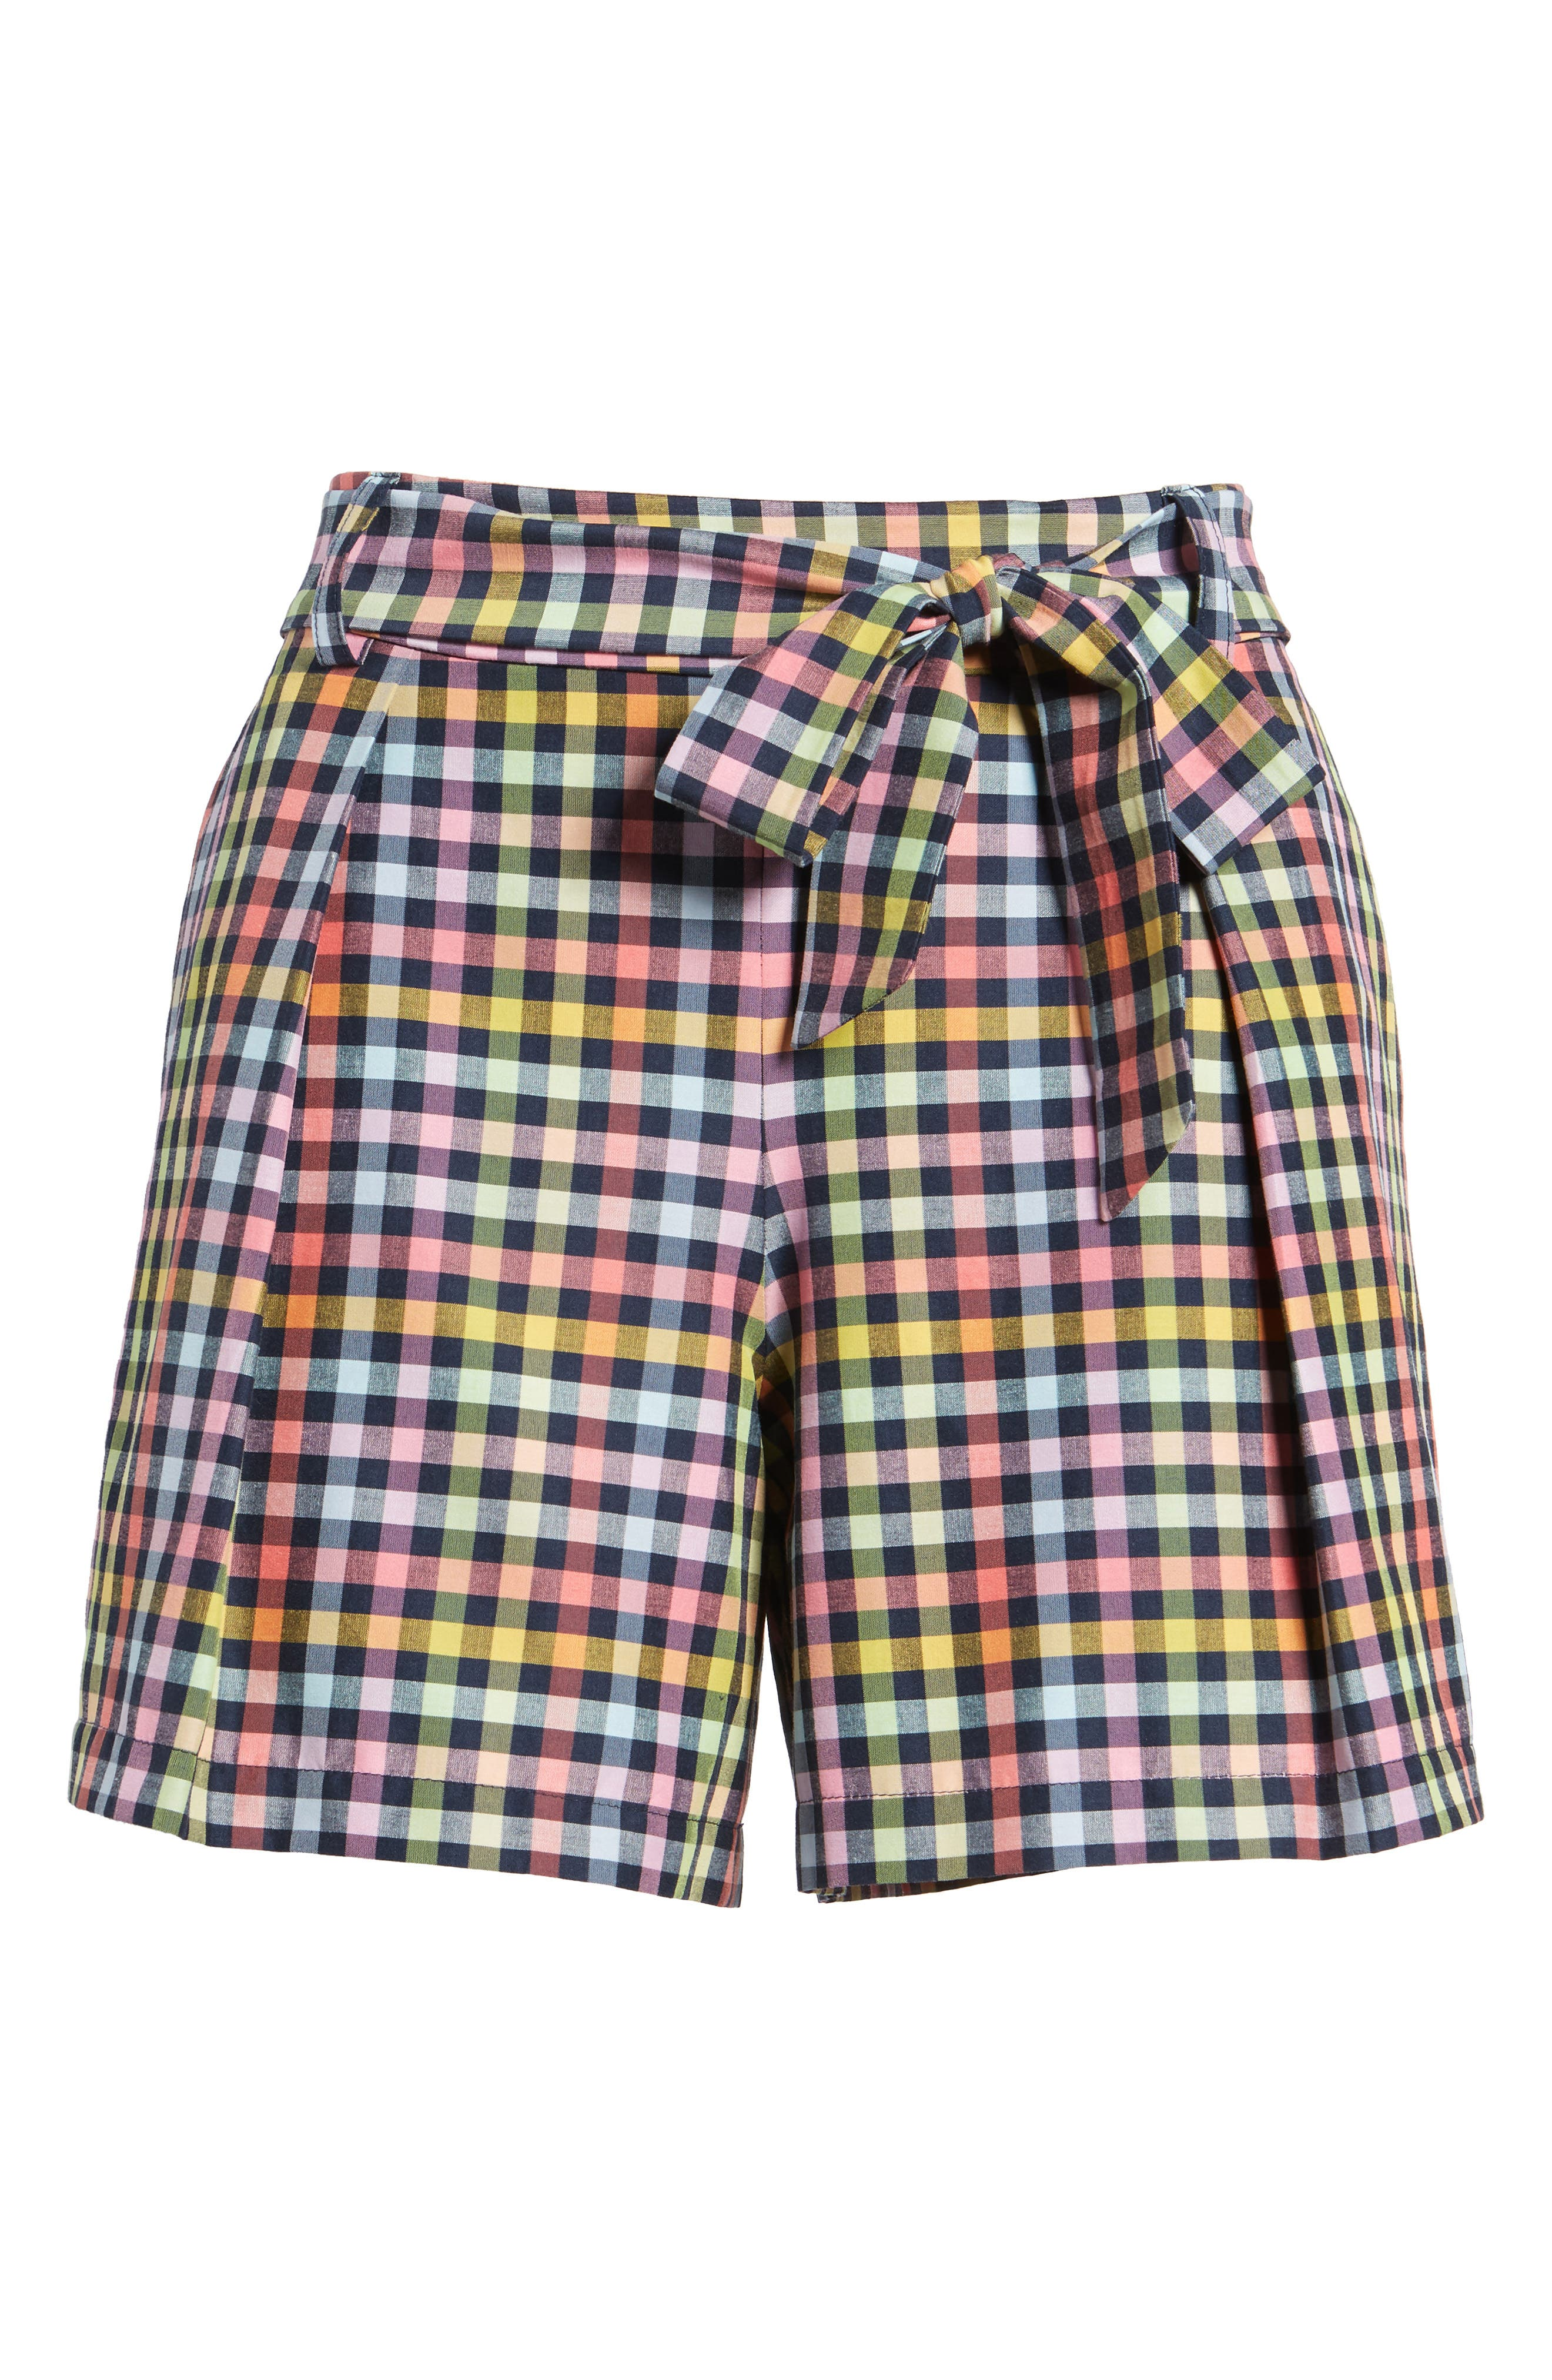 Pleated Plaid Bow Tie Shorts,                             Alternate thumbnail 6, color,                             410